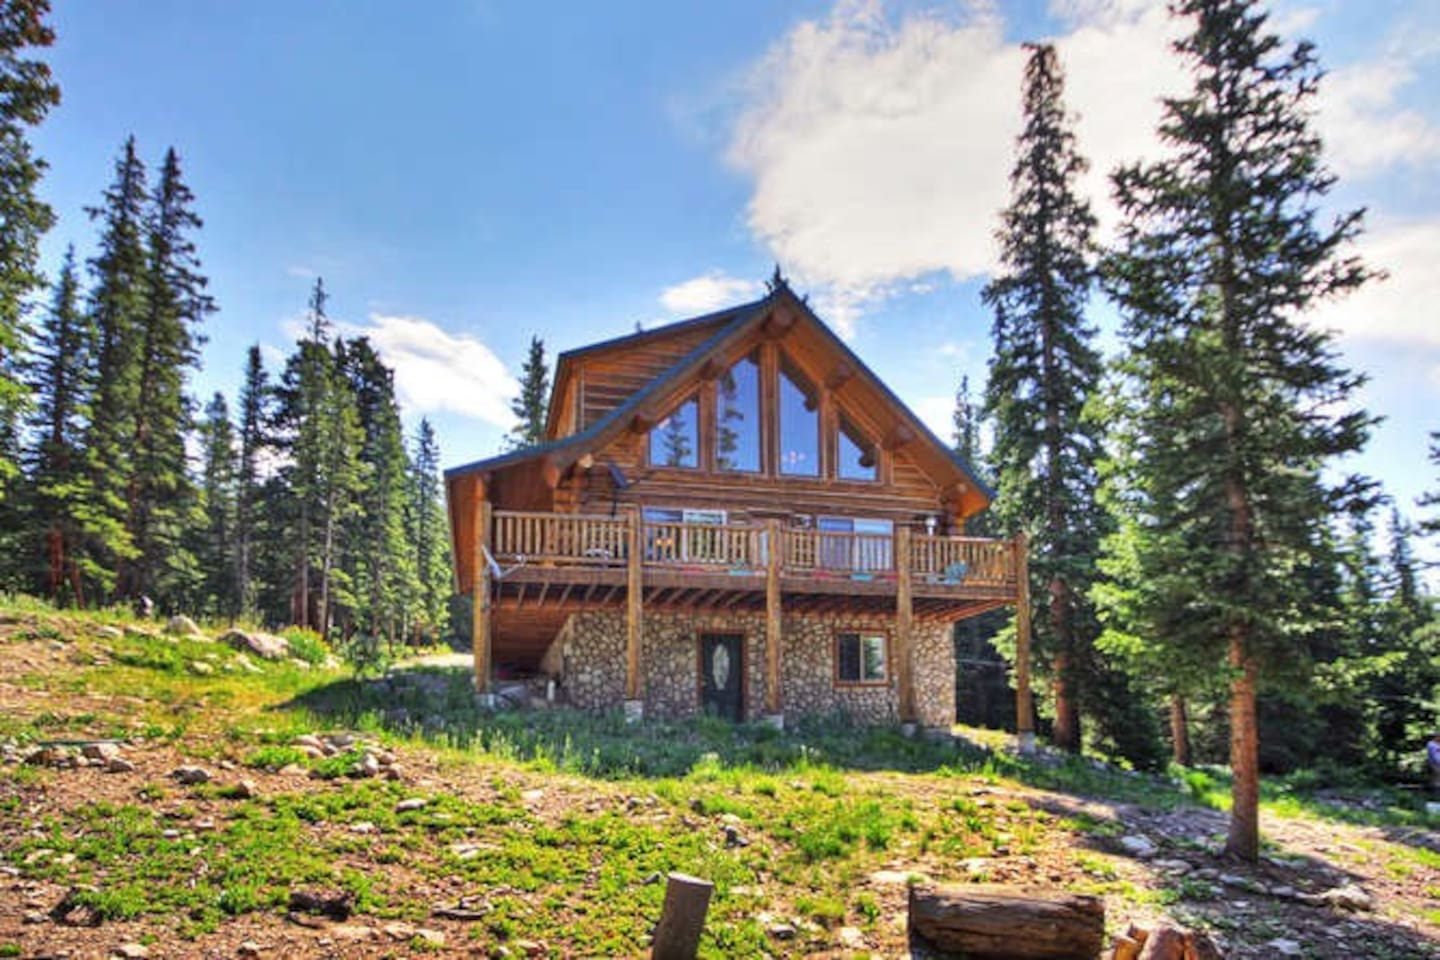 denver colorado the in my evergreen cabins architect austin tiny weekend texas evstudio engineer log cabin